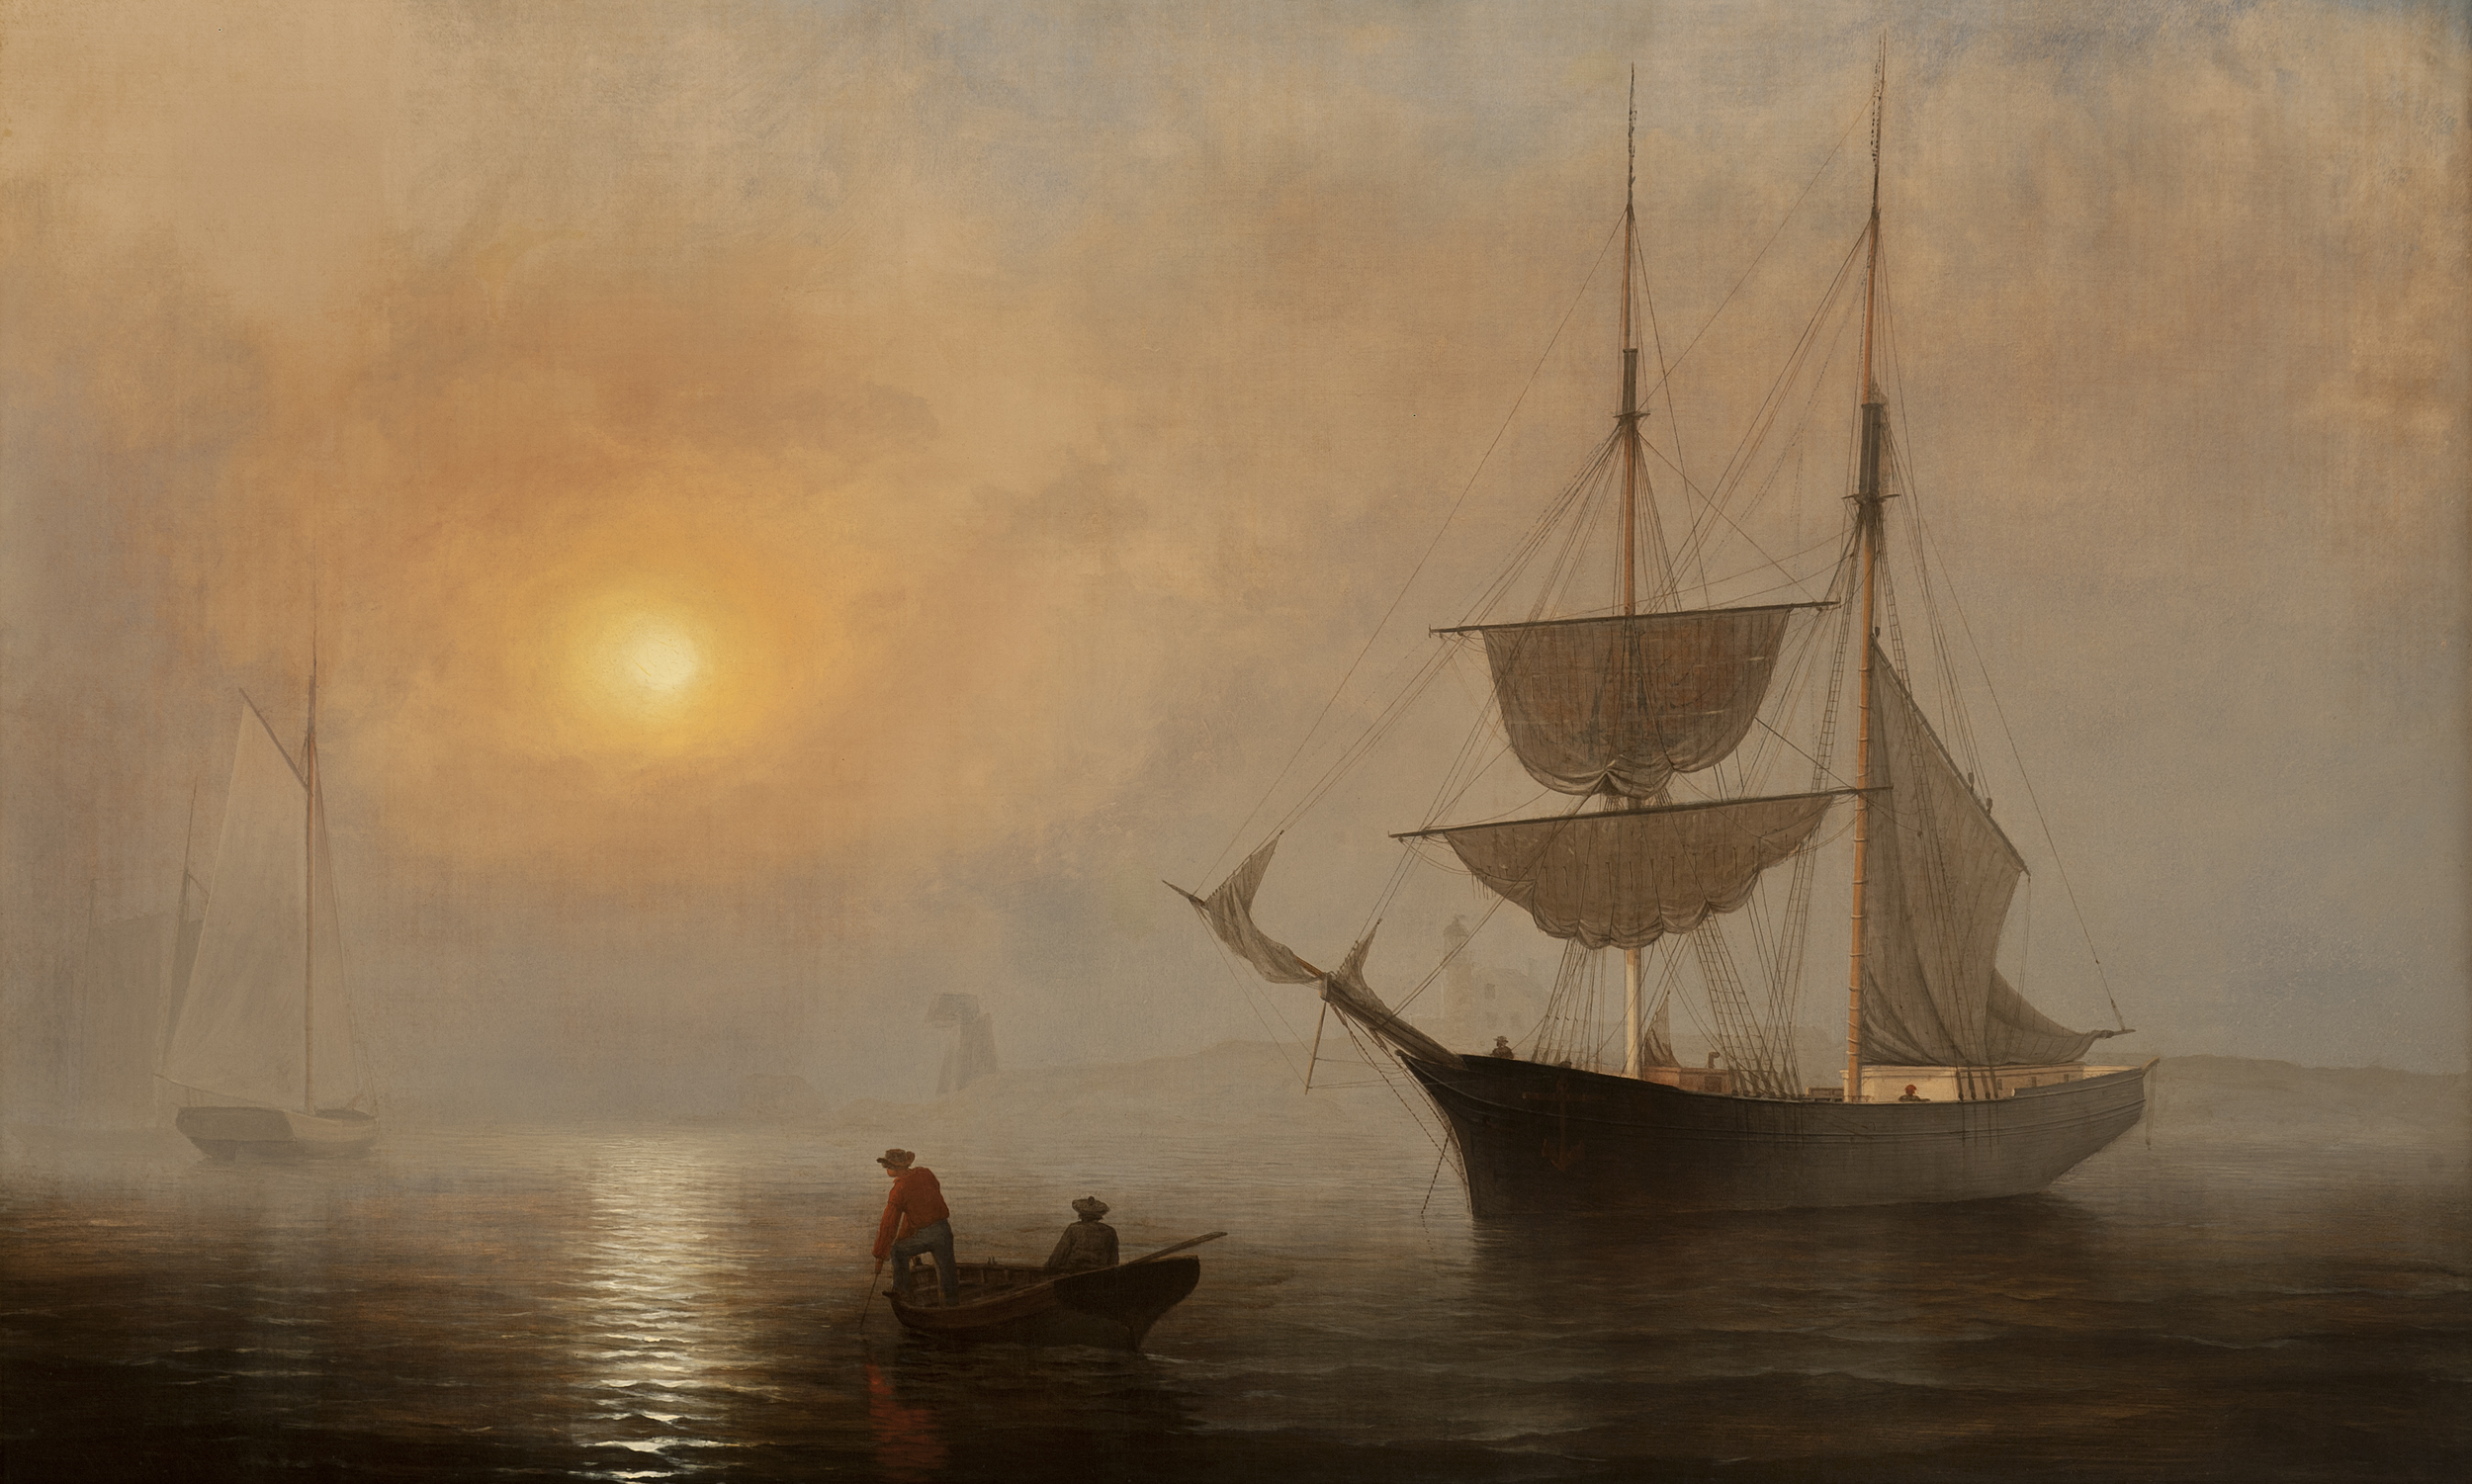 """Ships in Fog, Gloucester, Massachusetts"". Painted by Fitz Henry Lane in 1860, the same year John began his fishing career in Gloucester. Currently part of the Princeton University Art Museum (Fitz Henry Lane)"